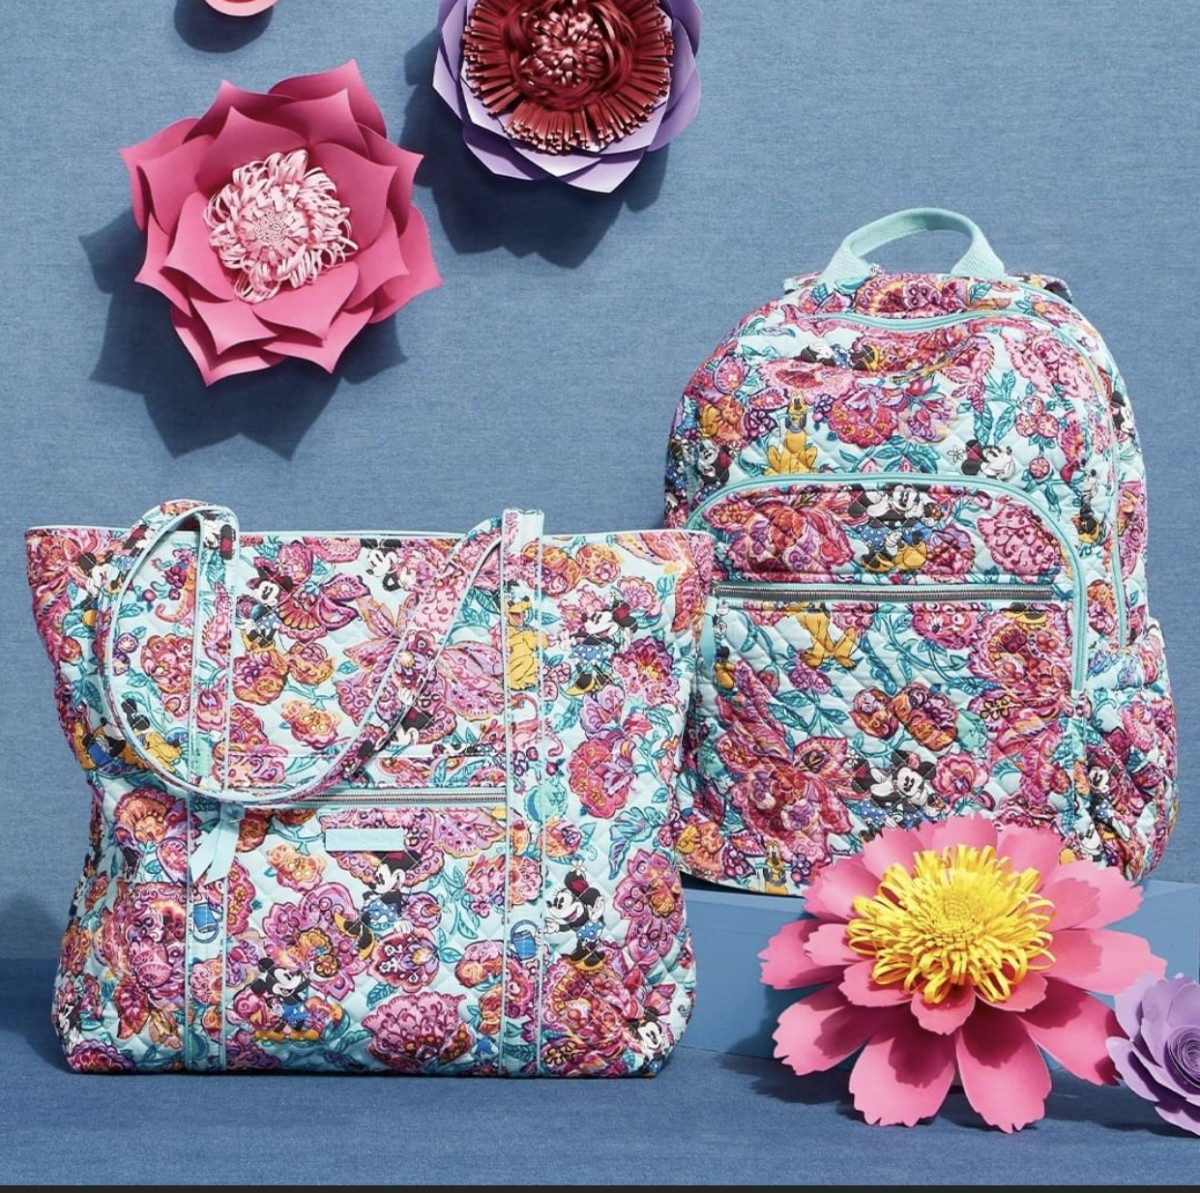 New Disney Vera Bradley Print on shopDisney! #disneystyle 1